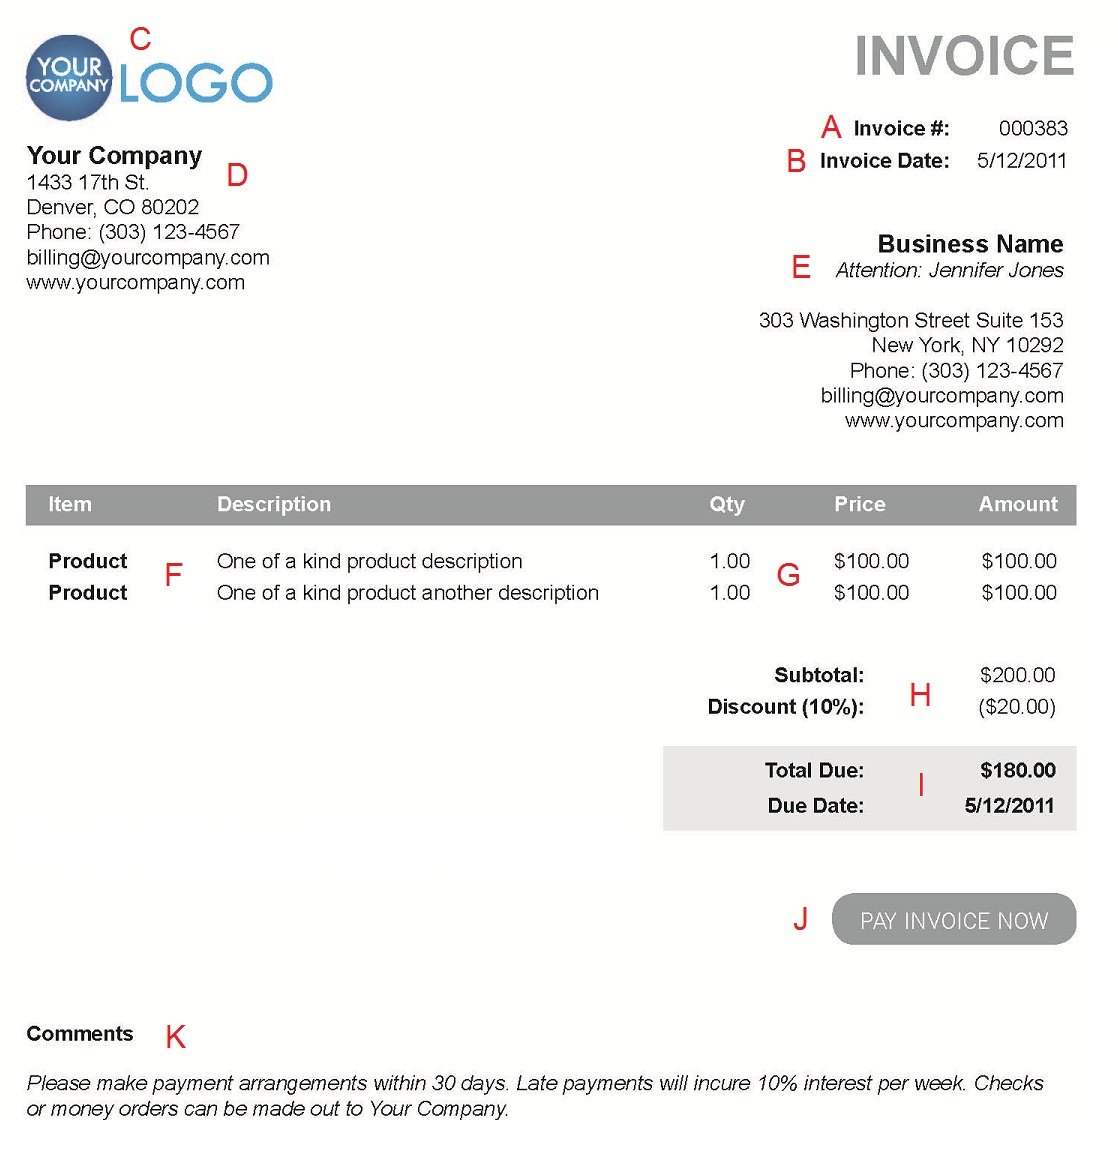 Coolmathgamesus  Gorgeous The  Different Sections Of An Electronic Payment Invoice With Goodlooking A  With Divine Business Invoicing Software Also How To Make An Invoice Template In Addition Microsoft Access Invoice Template And Invoice No As Well As Google Docs Invoice Templates Additionally Vendor Invoice Template From Paysimplecom With Coolmathgamesus  Goodlooking The  Different Sections Of An Electronic Payment Invoice With Divine A  And Gorgeous Business Invoicing Software Also How To Make An Invoice Template In Addition Microsoft Access Invoice Template From Paysimplecom